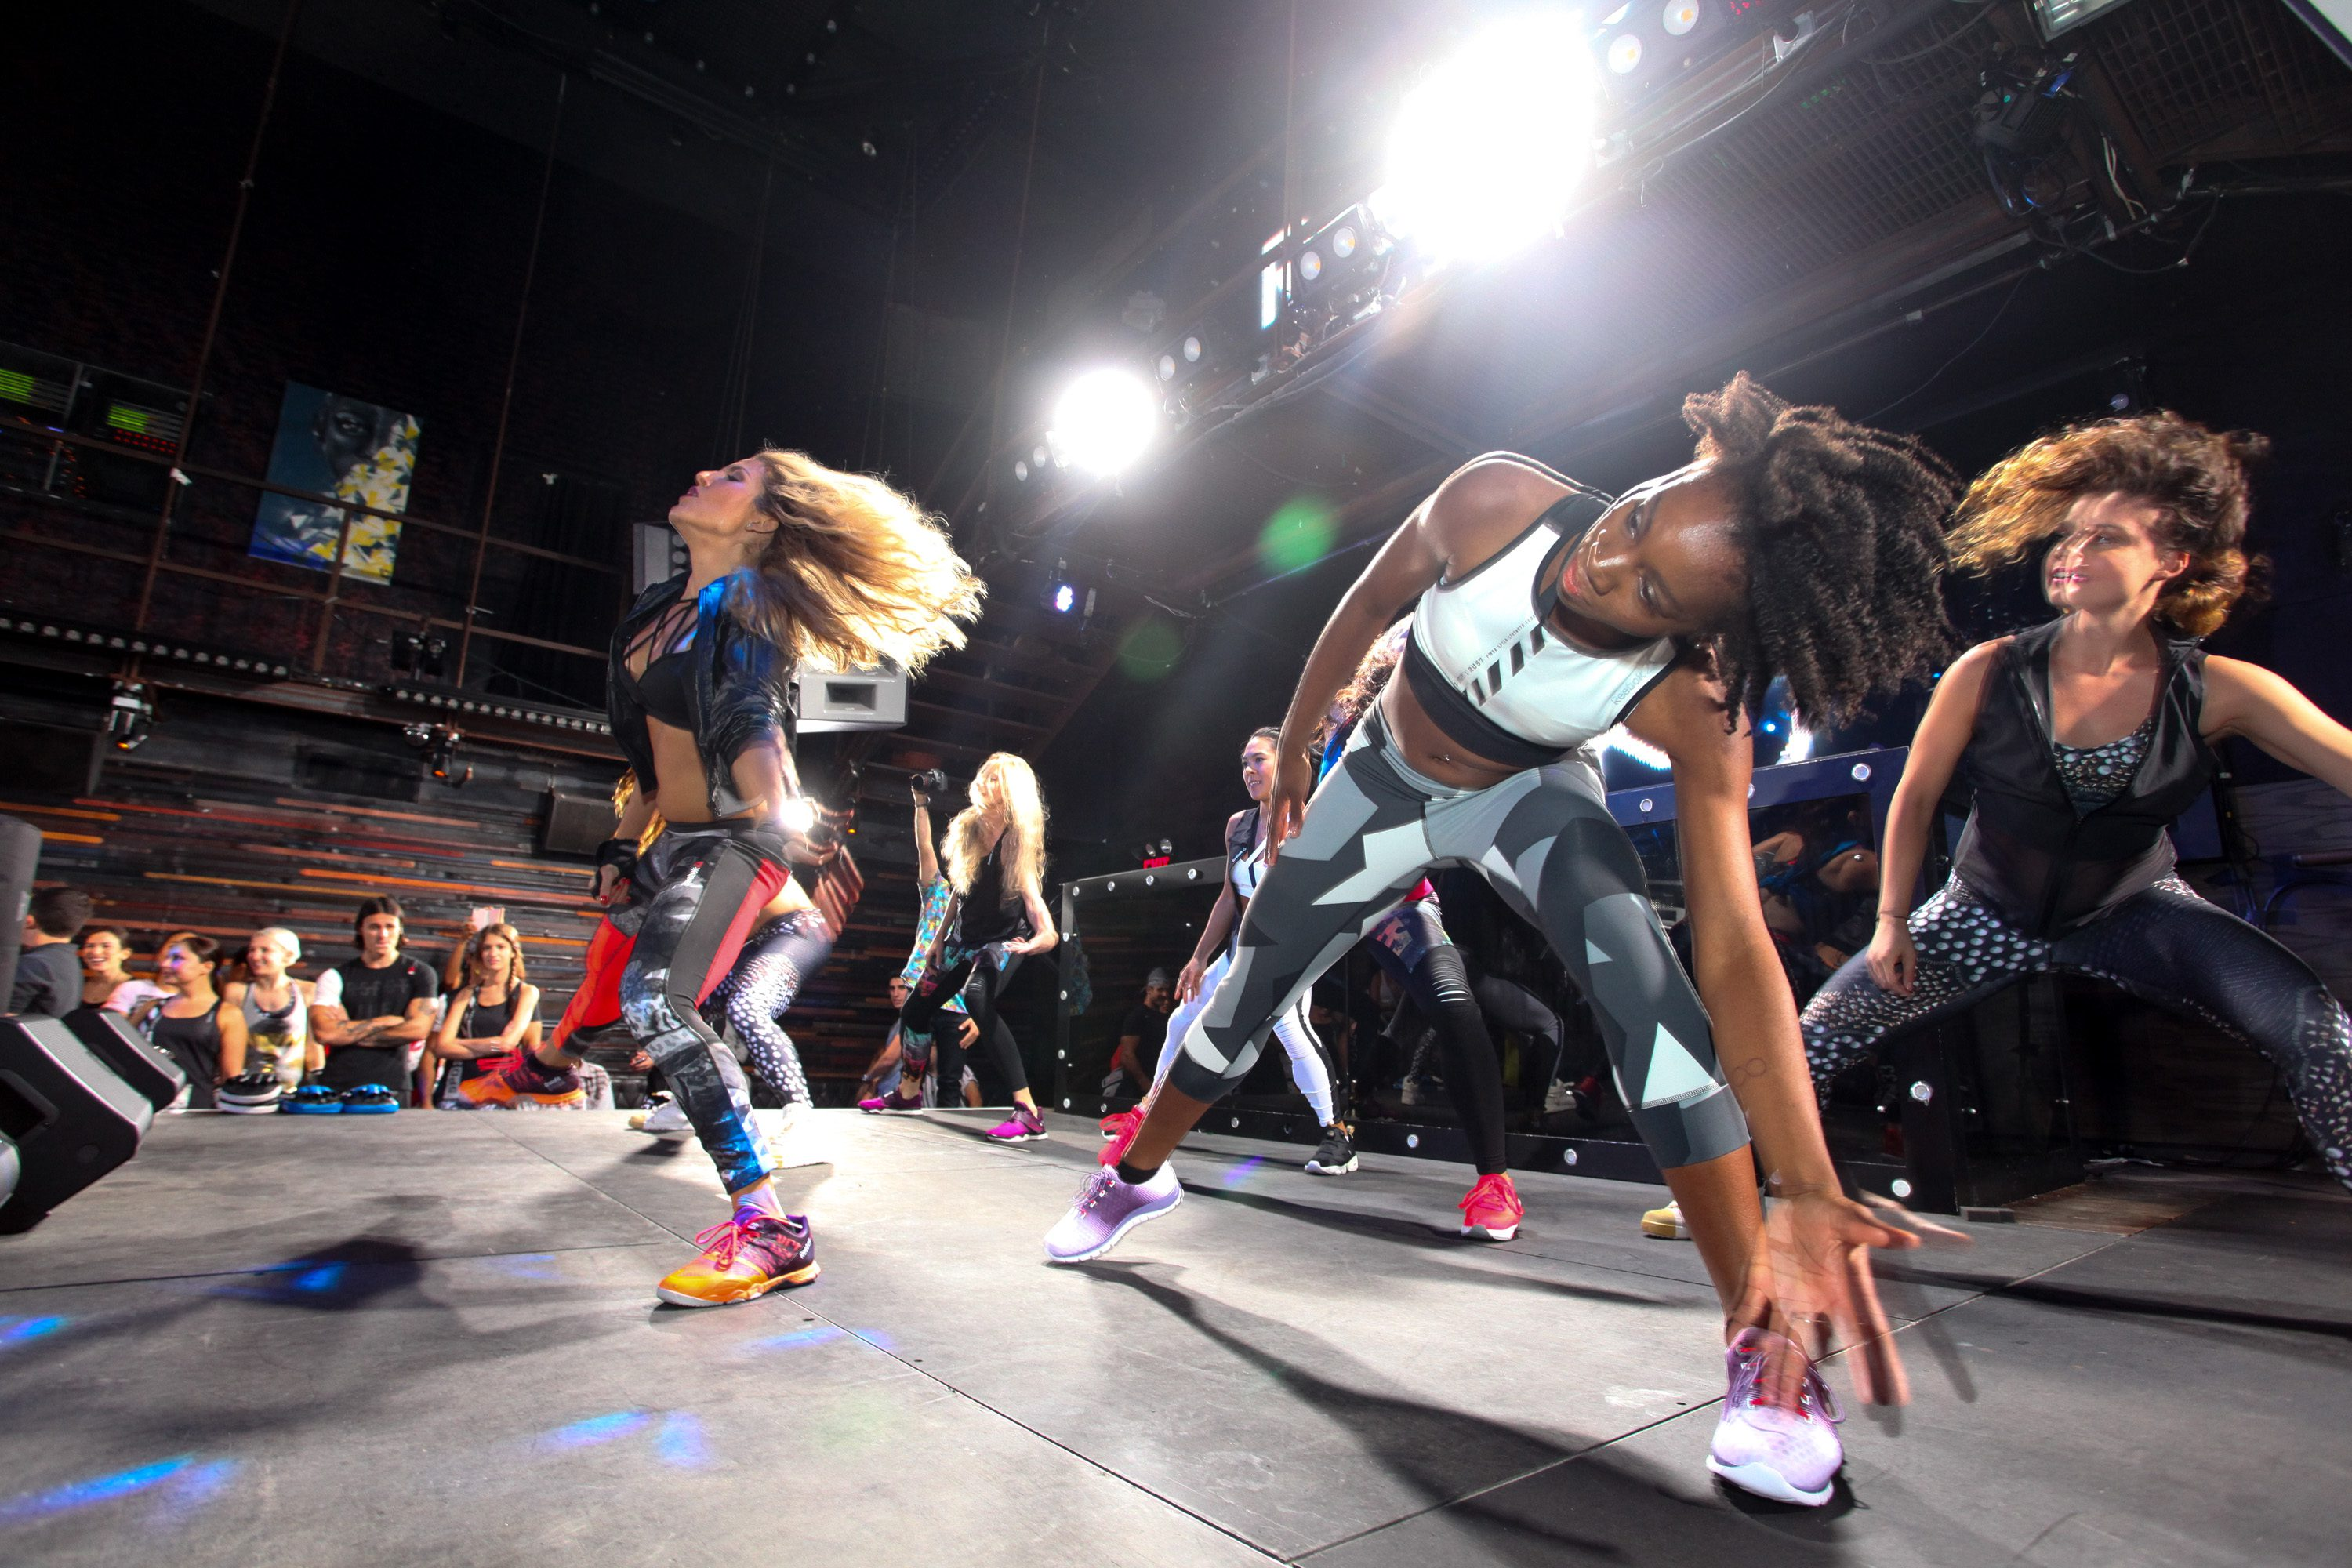 NEW YORK, NY - SEPTEMBER 16: AKT in Motion Class at Marquee on September 16, 2015 in New York City. (Photo by Donald Bowers/Getty Images for Reebok)